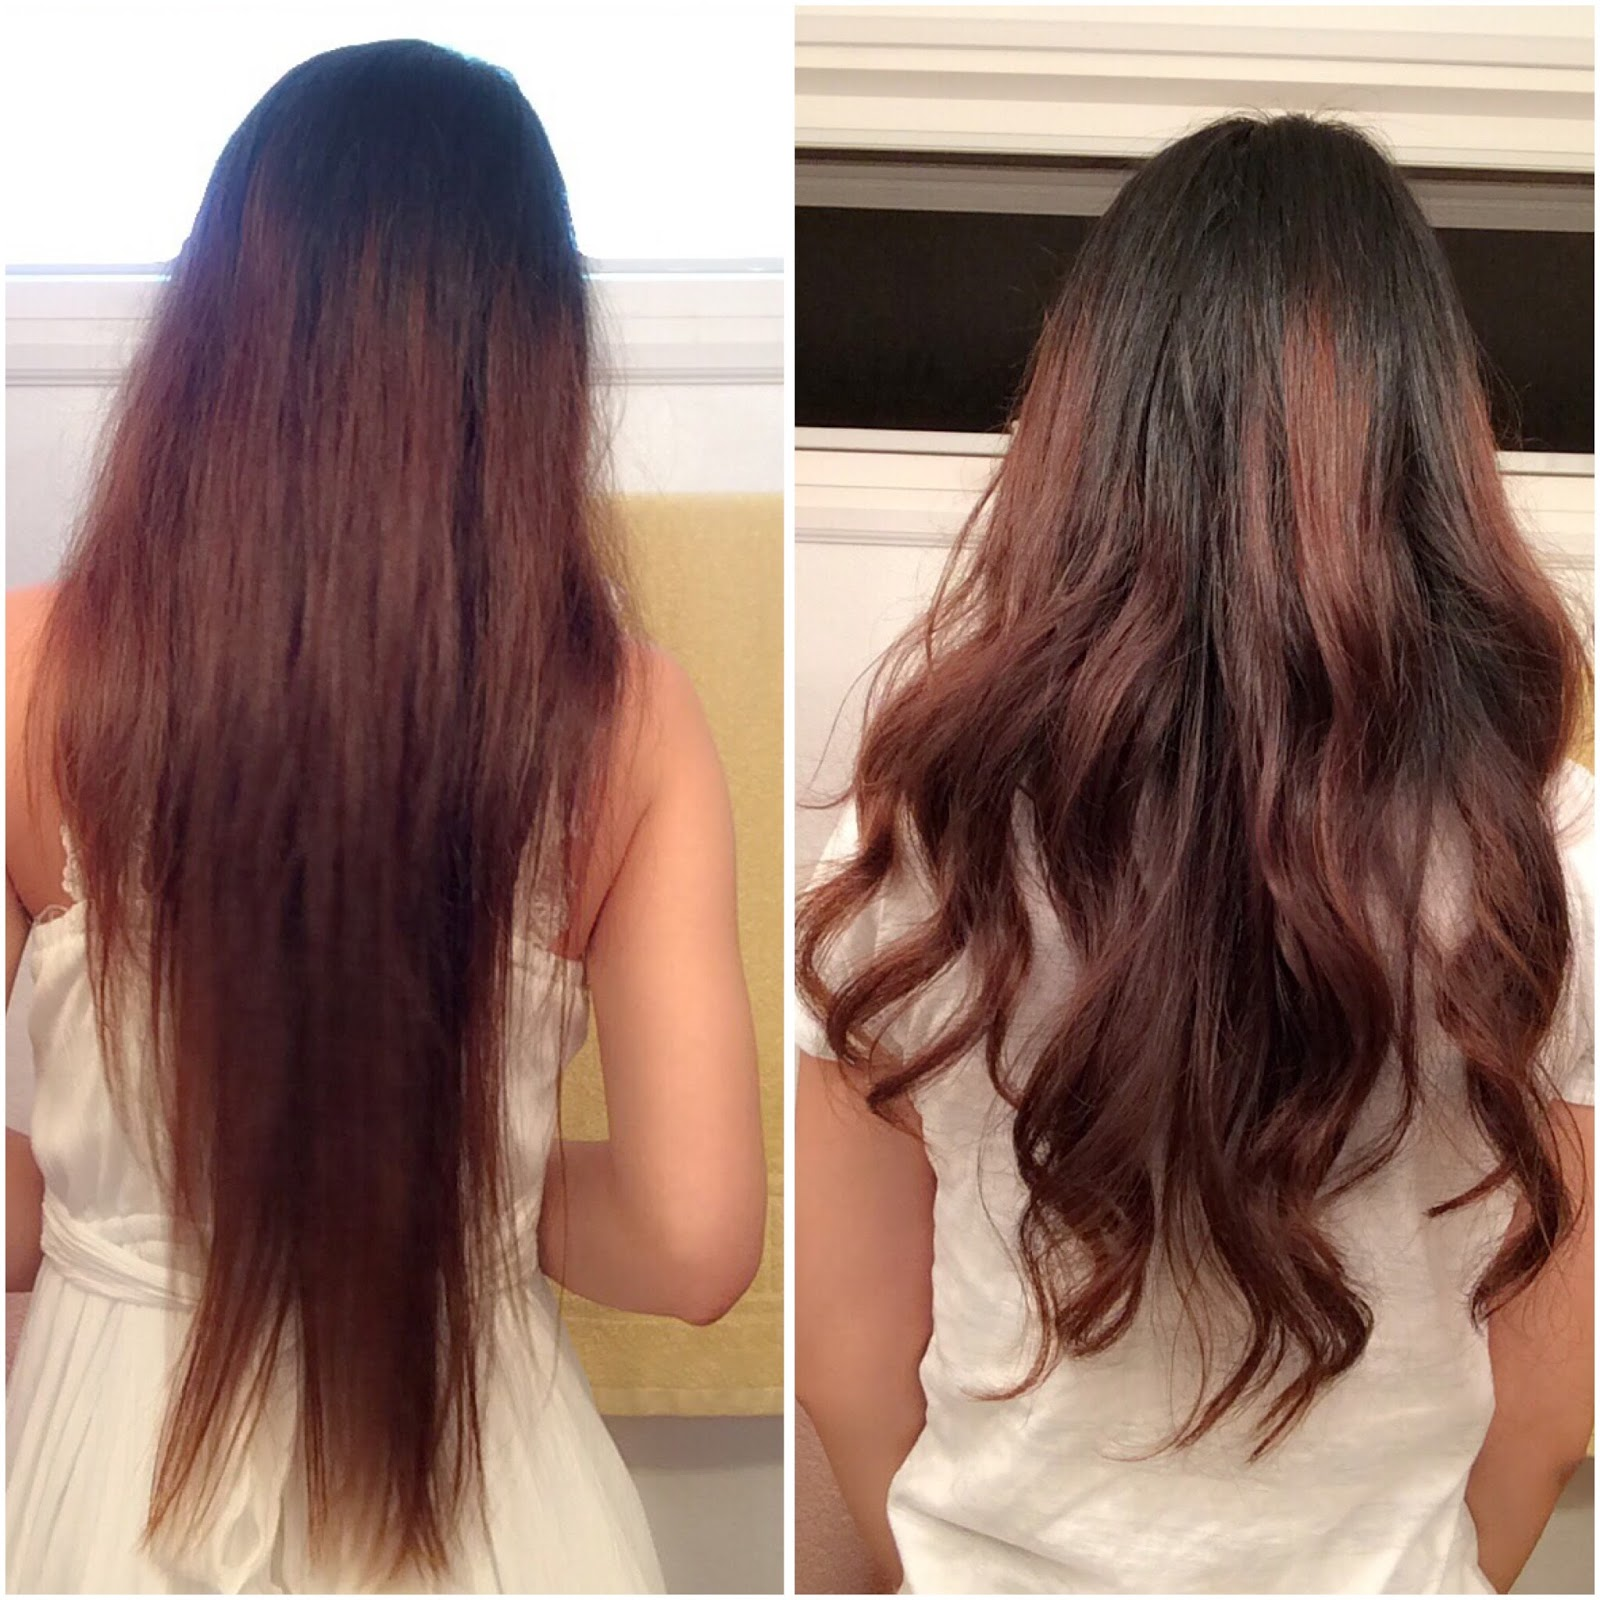 Japanese straight perm wash hair - Comparison Pictures Before Taken In The Morning Before I Left After Air Drying After Shampoo And Conditioning And After Night After Appointment